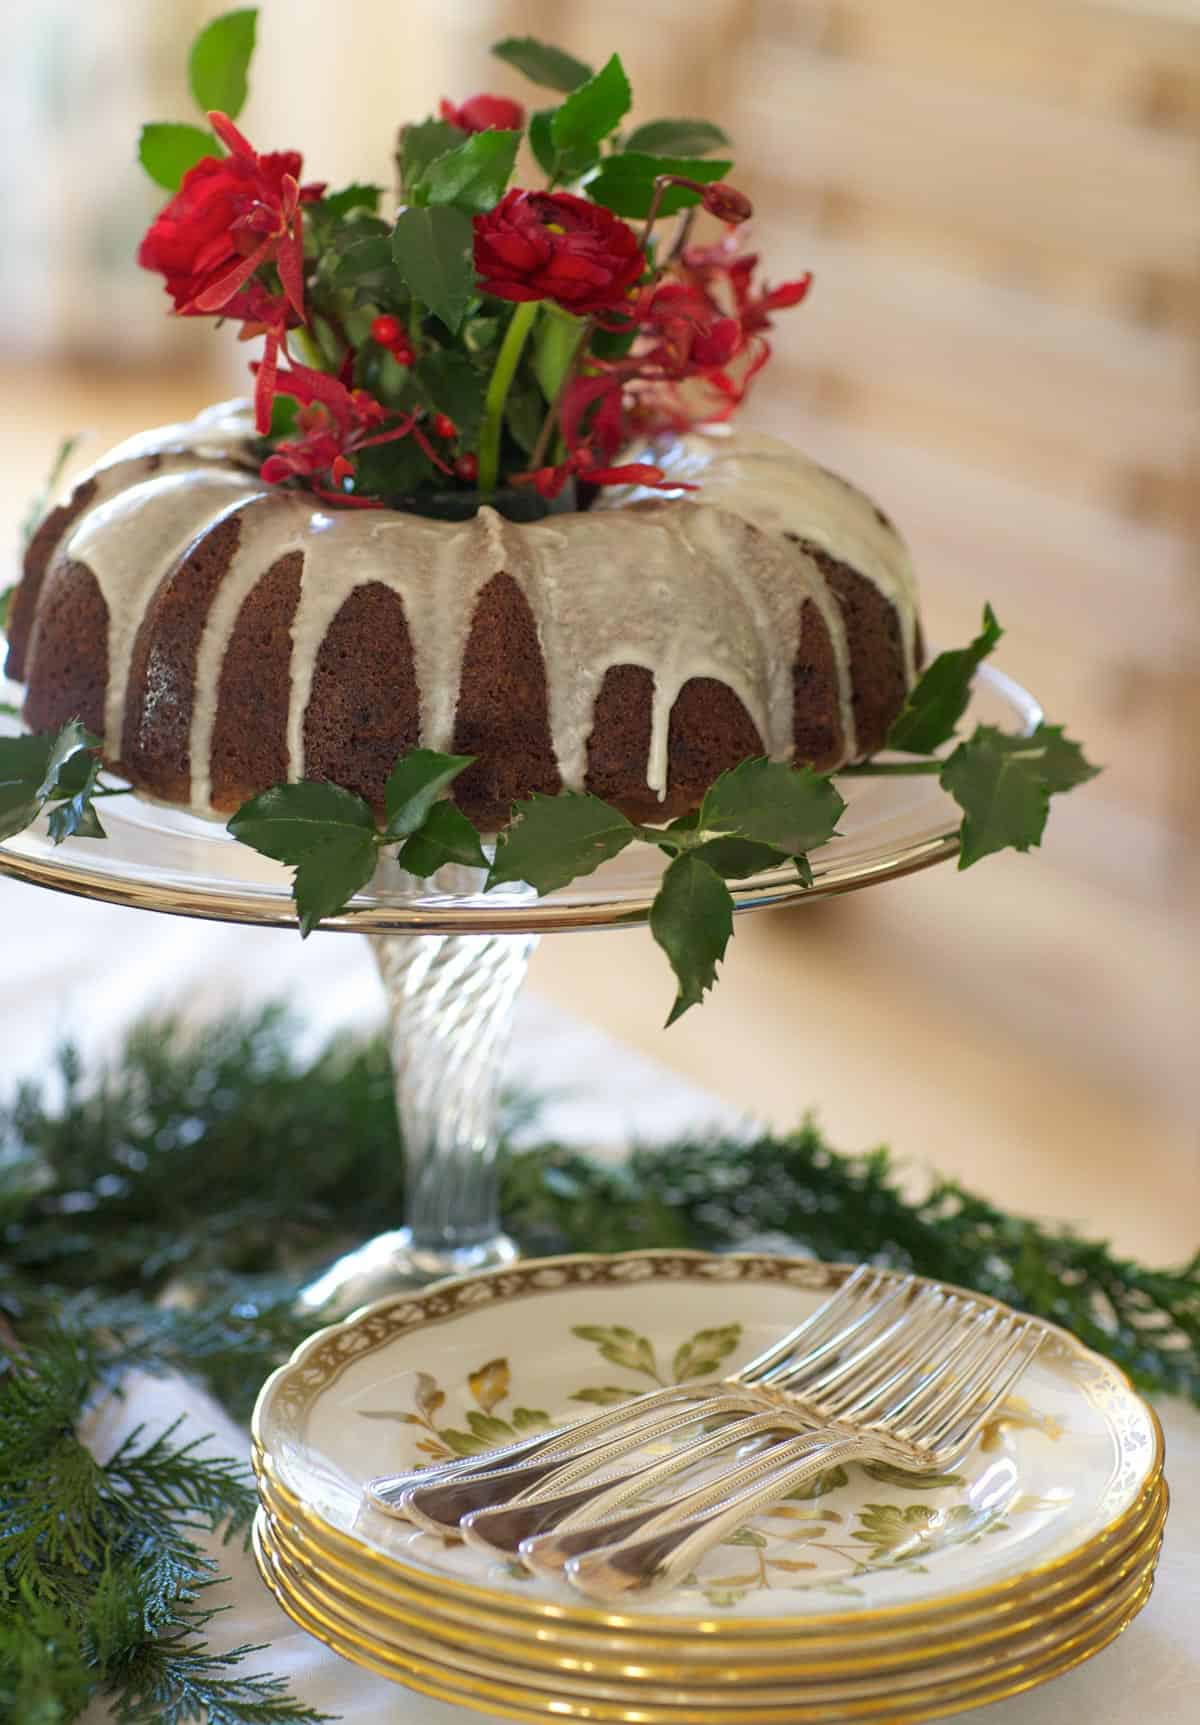 Bundt pan-shaped Apple Cake on a glass cake stand with flowers